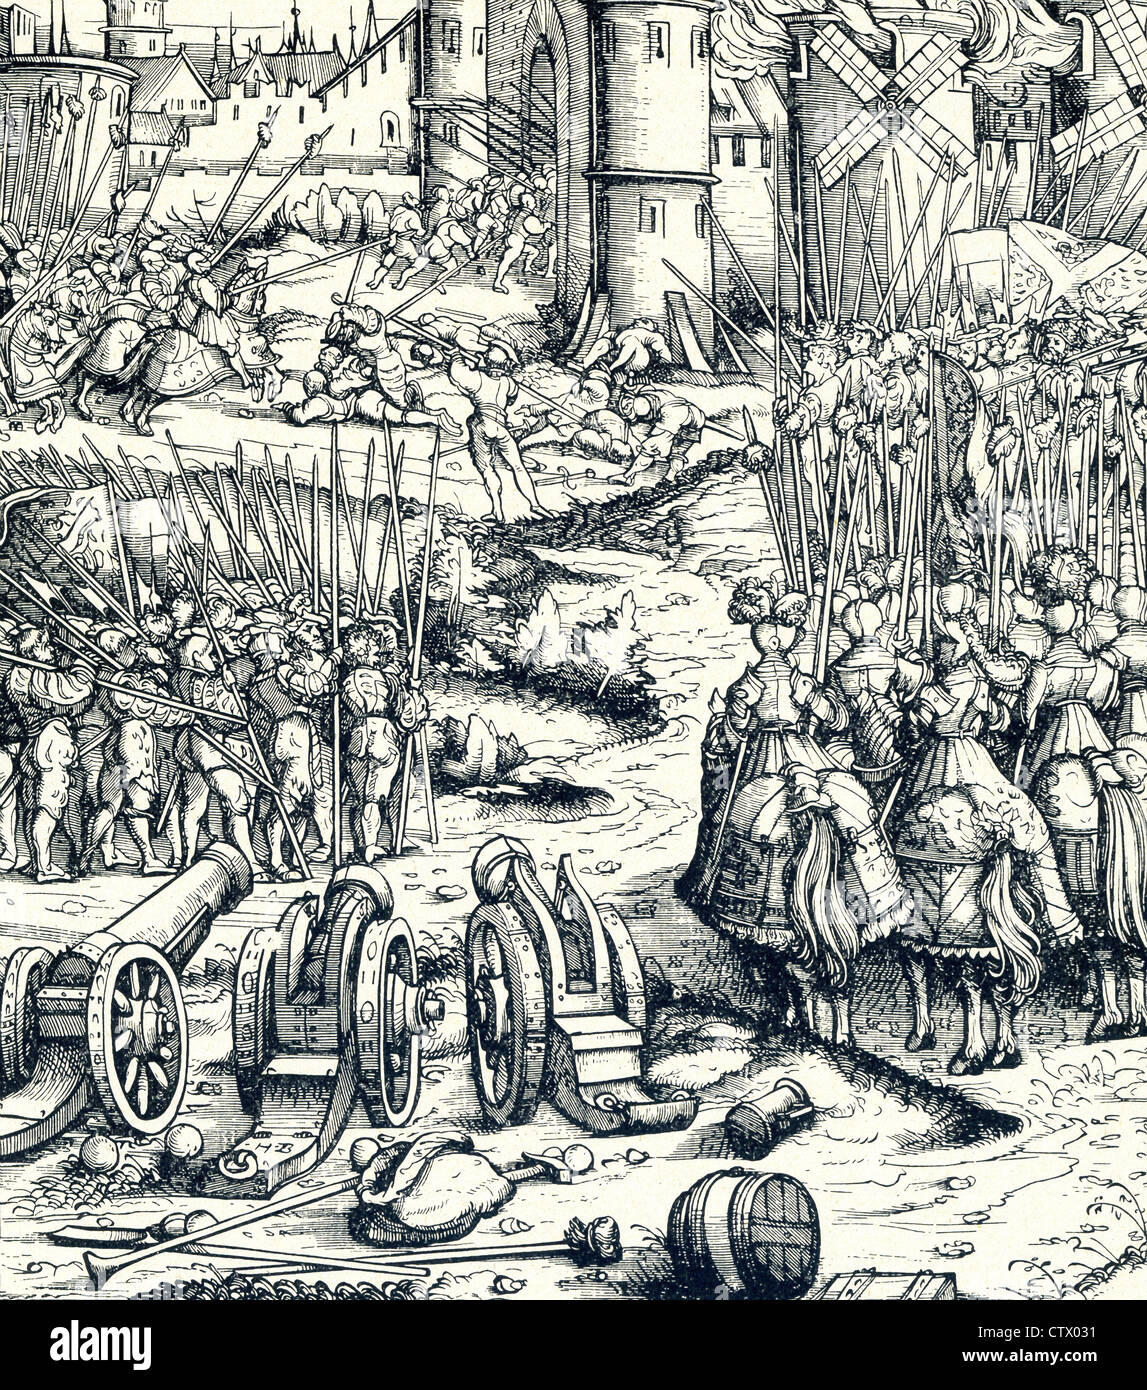 With cannon, spears, and cavalry, armed forces in the early 1500s lay siege to a city, only to be rebuffed. - Stock Image